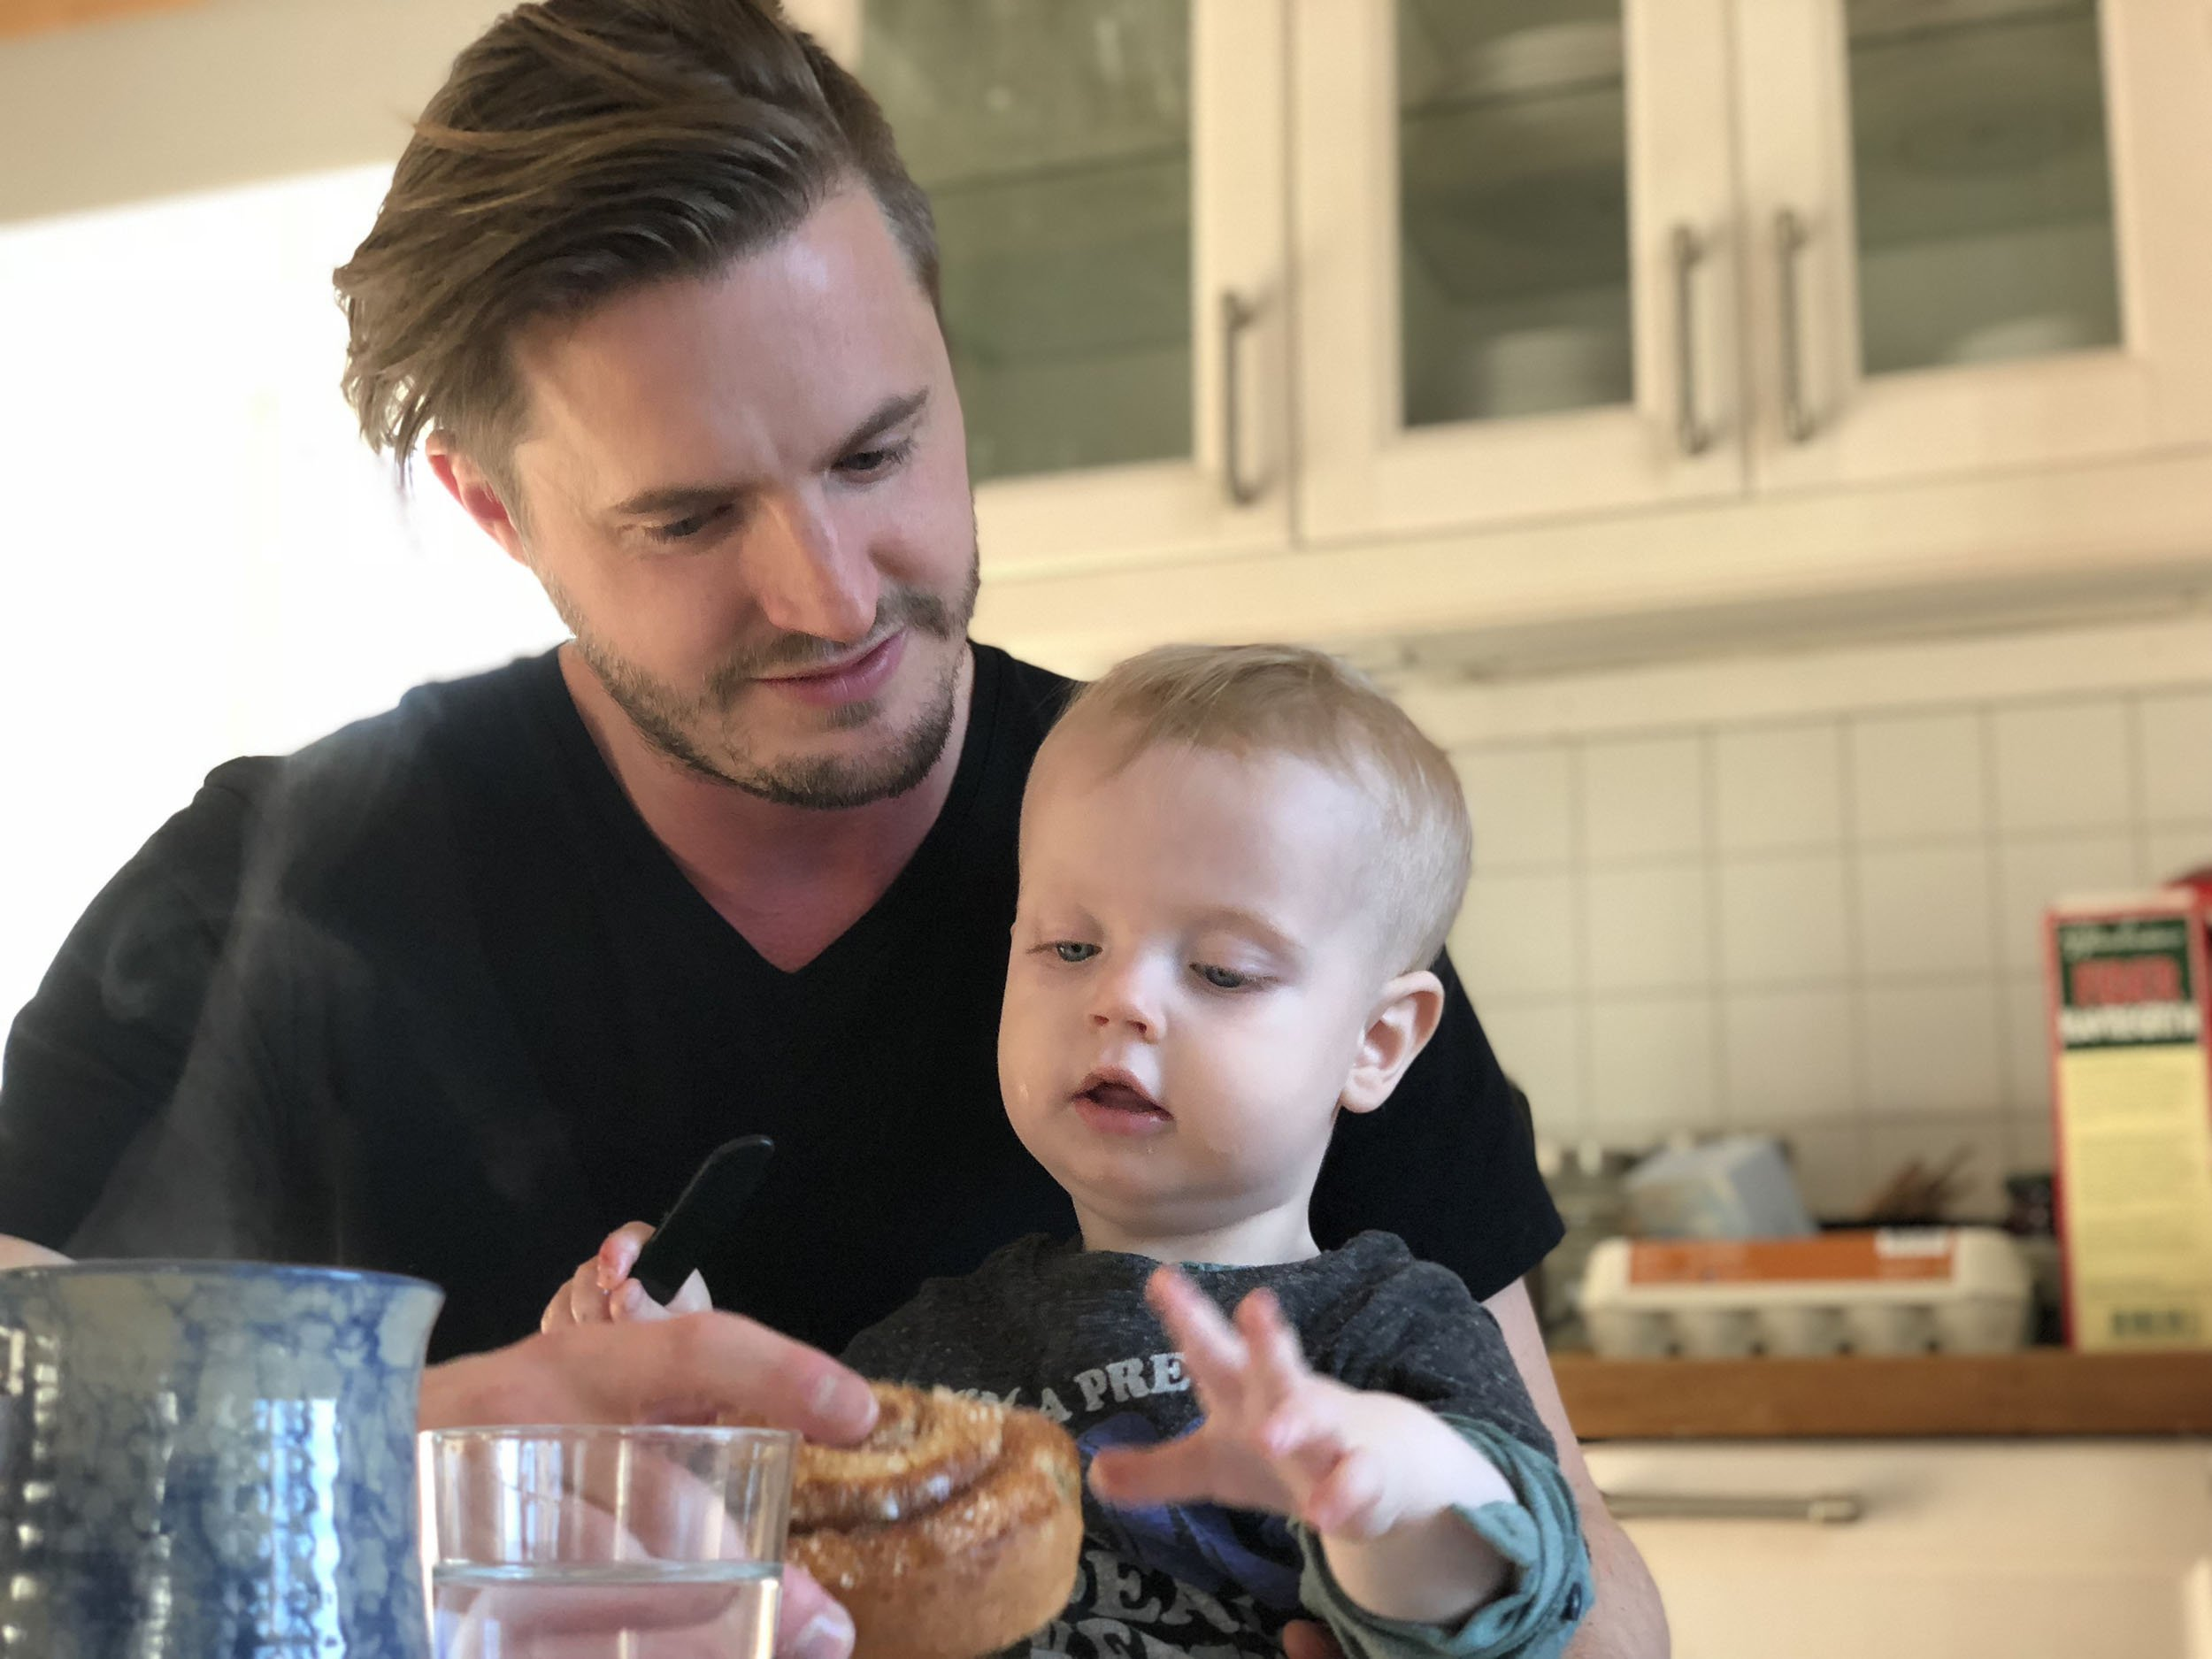 Swedish fathers on child care leave